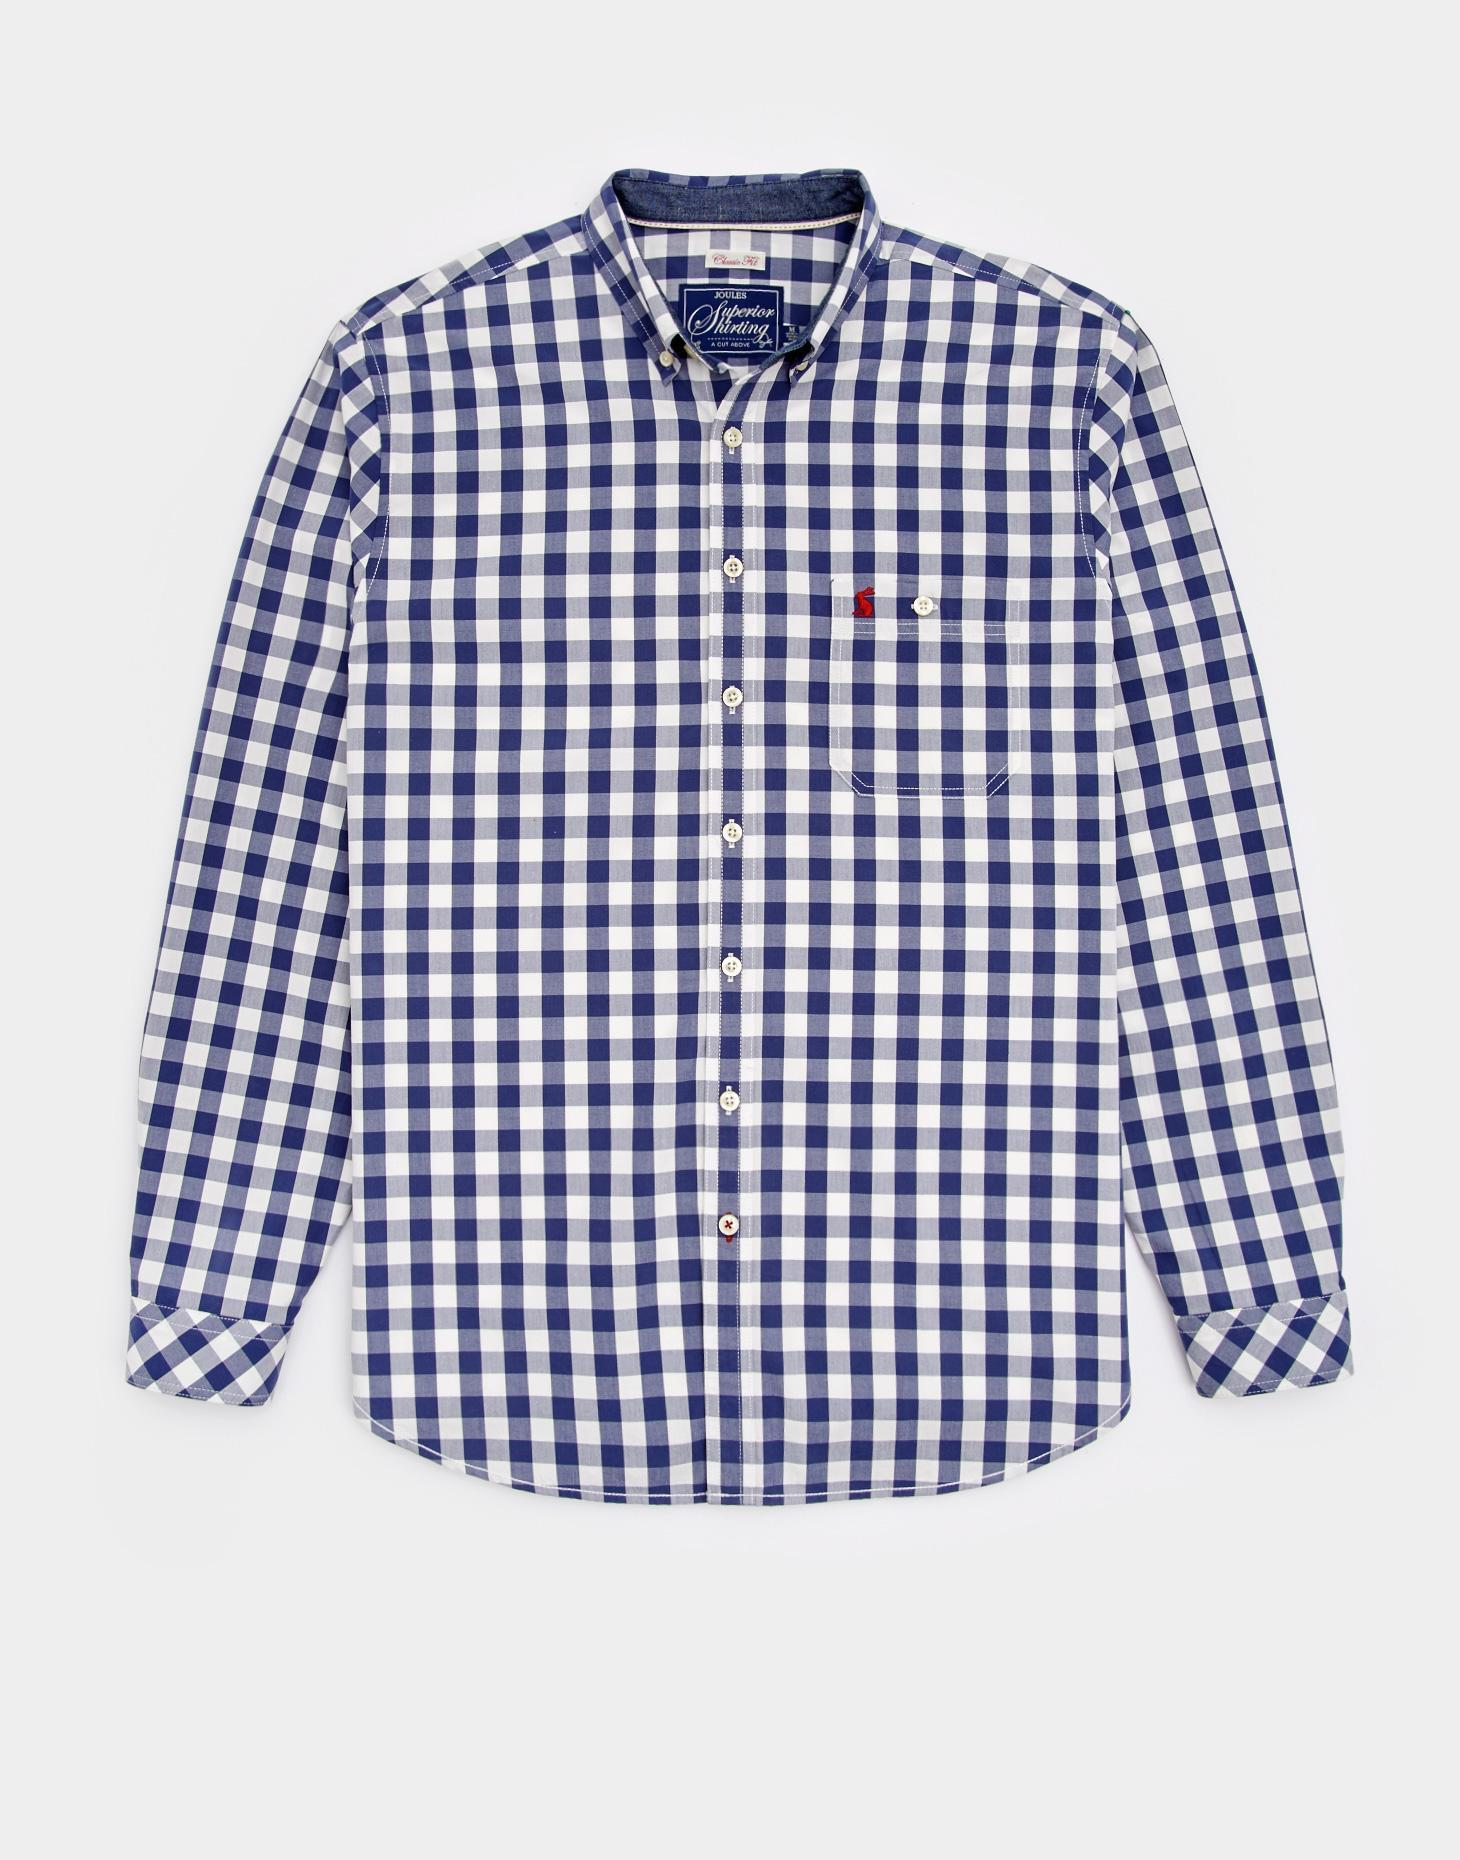 Joules Buckingham Blue Gingham HEWNEY Classic Fit Shirt